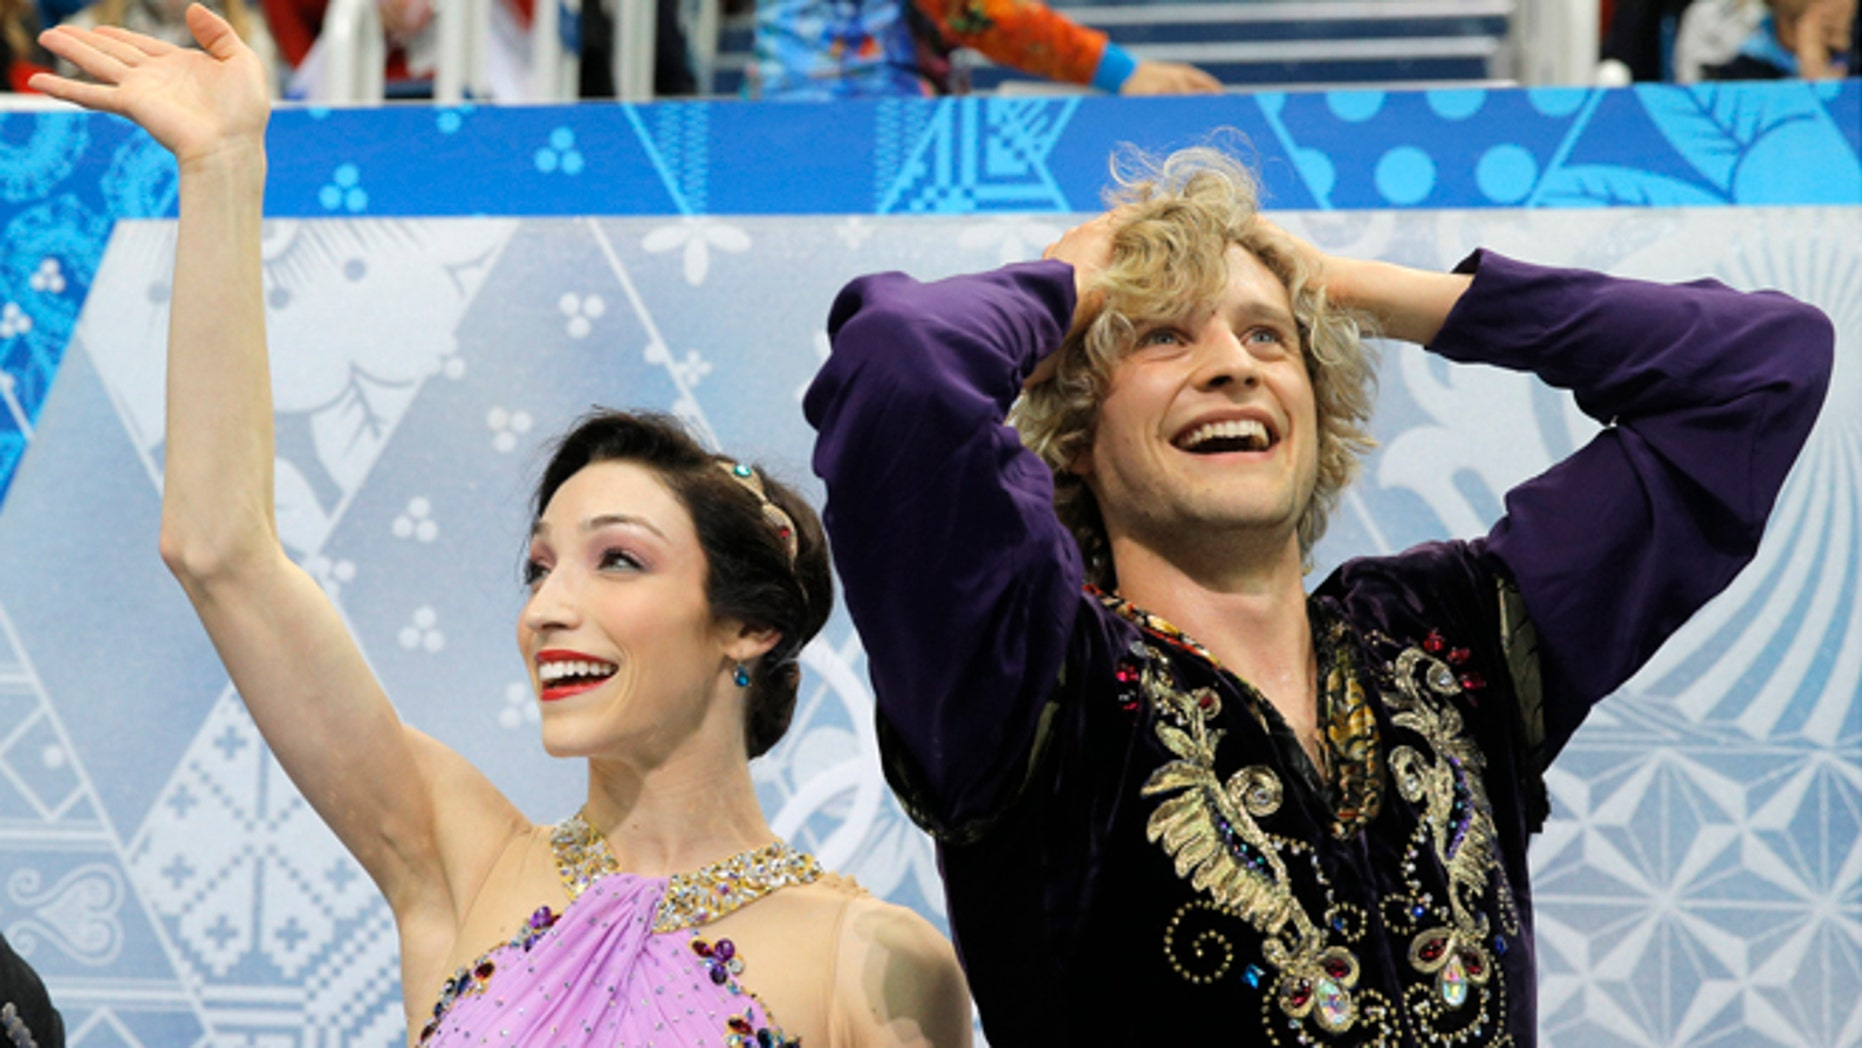 Feb. 17, 2014: Meryl Davis and Charlie White of the United States react in the results area after competing in the ice dance free dance figure skating finals at the Iceberg Skating Palace during the 2014 Winter Olympics in Sochi, Russia.